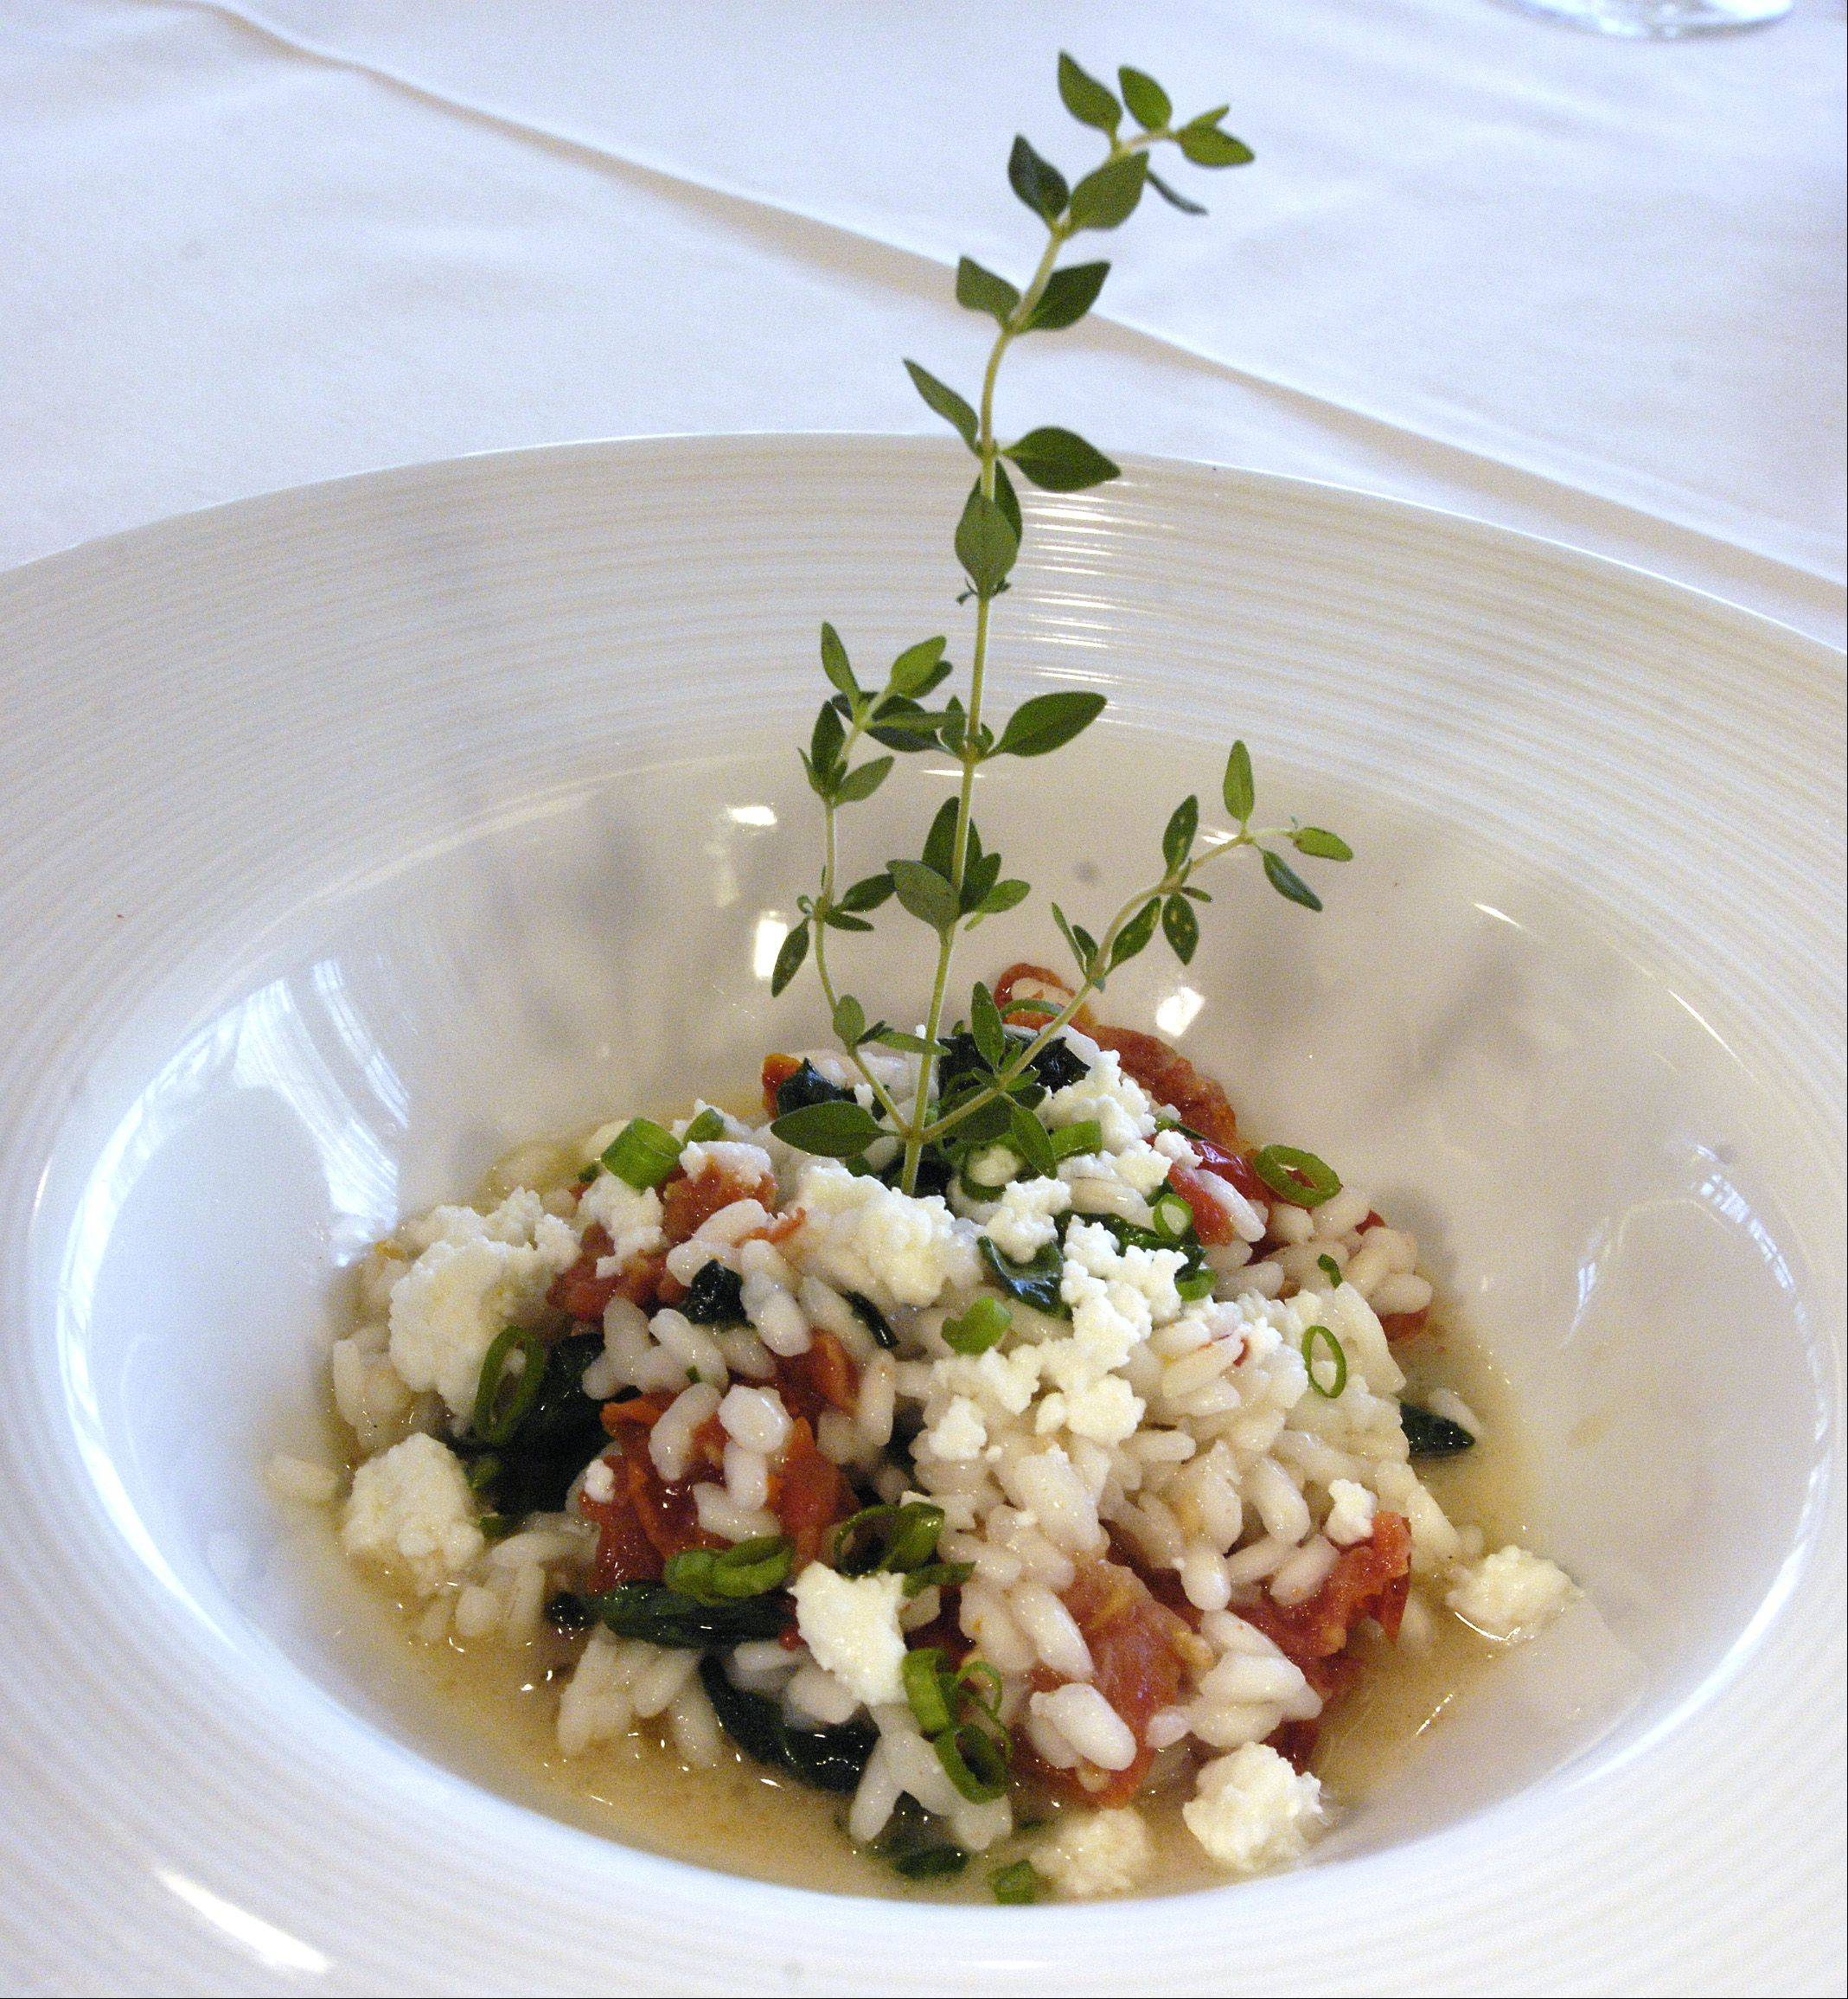 Mushroom-studded risotto is a bright spot on Waterleaf's menu.